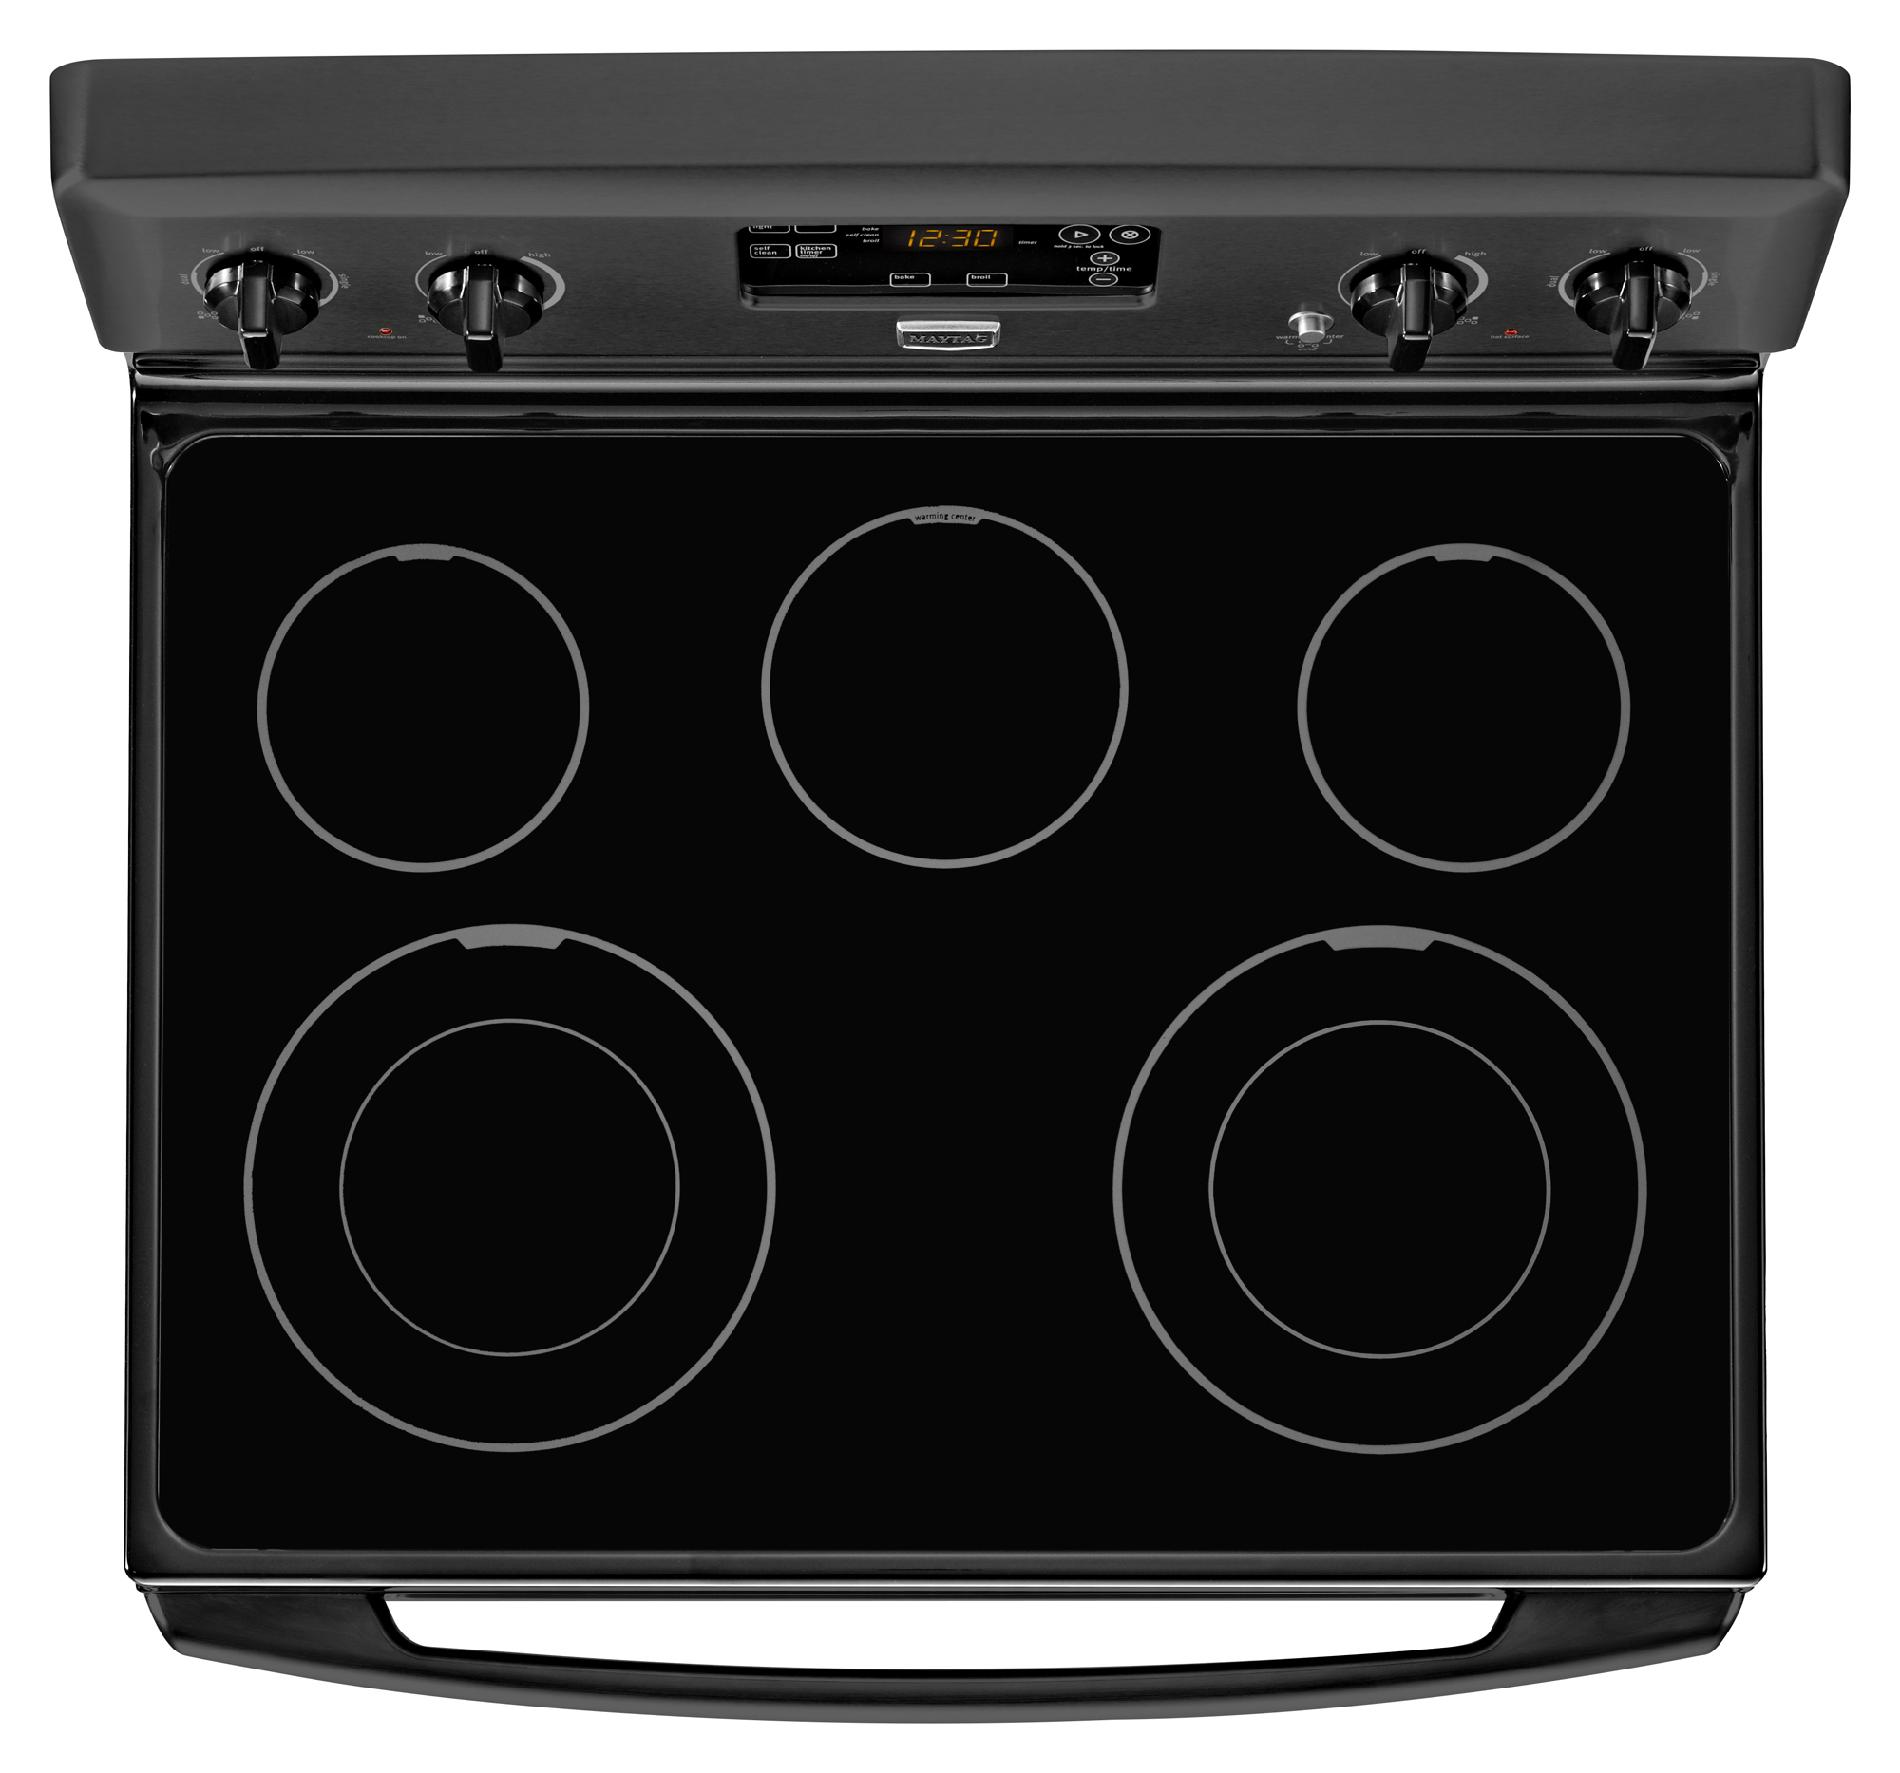 Maytag 5.3 cu. ft. Electric Range w/ 2 Dual-Choice™ Elements - Black